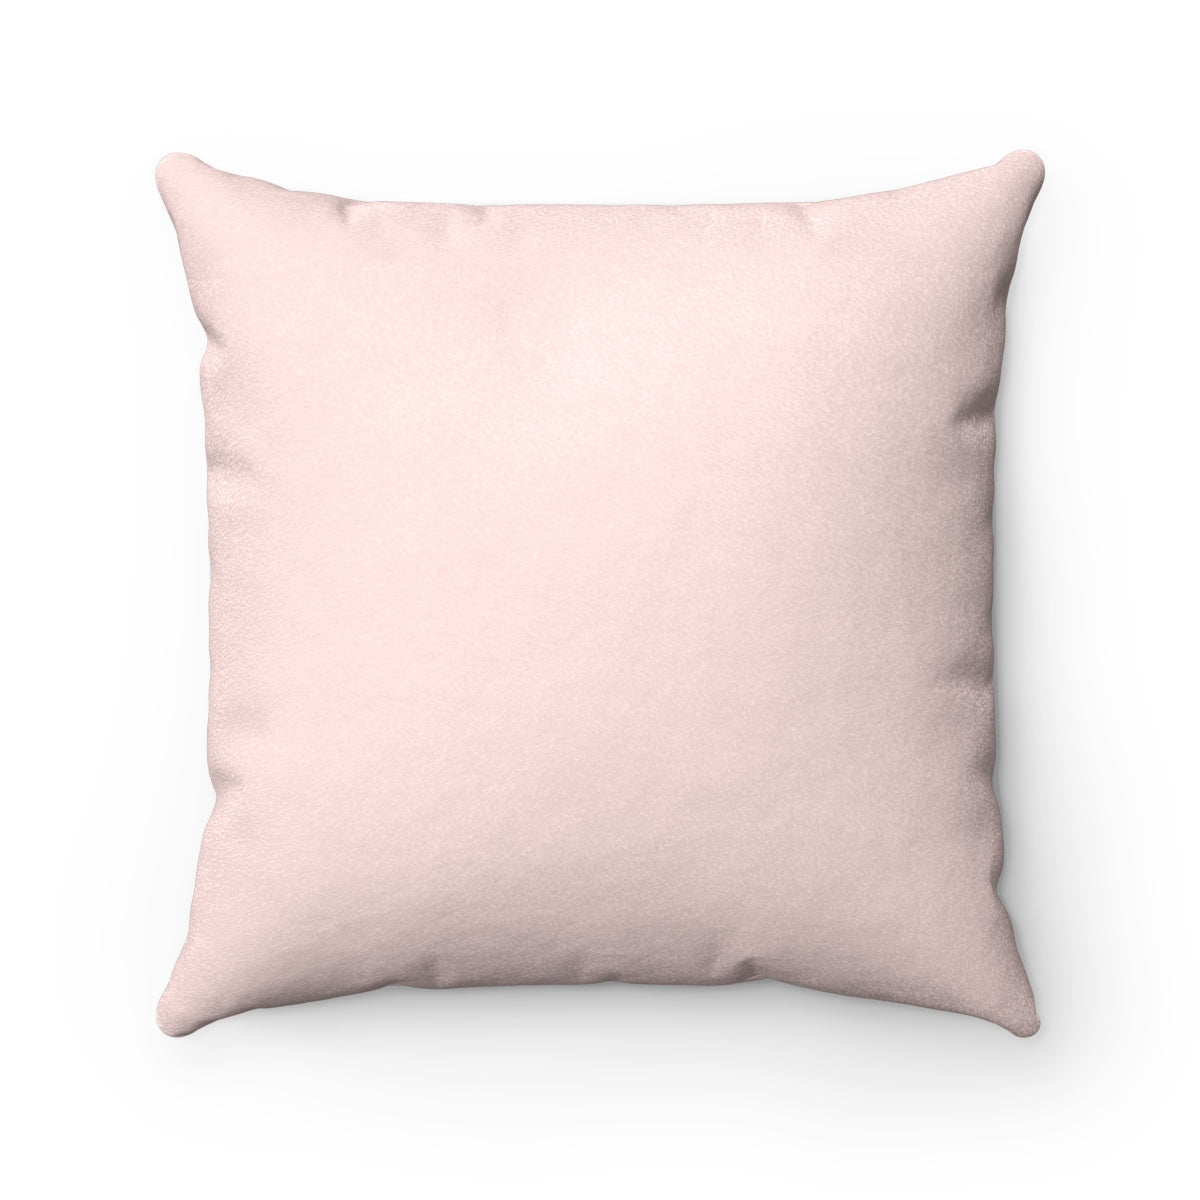 Soft Pink Faux Suede Square Pillow